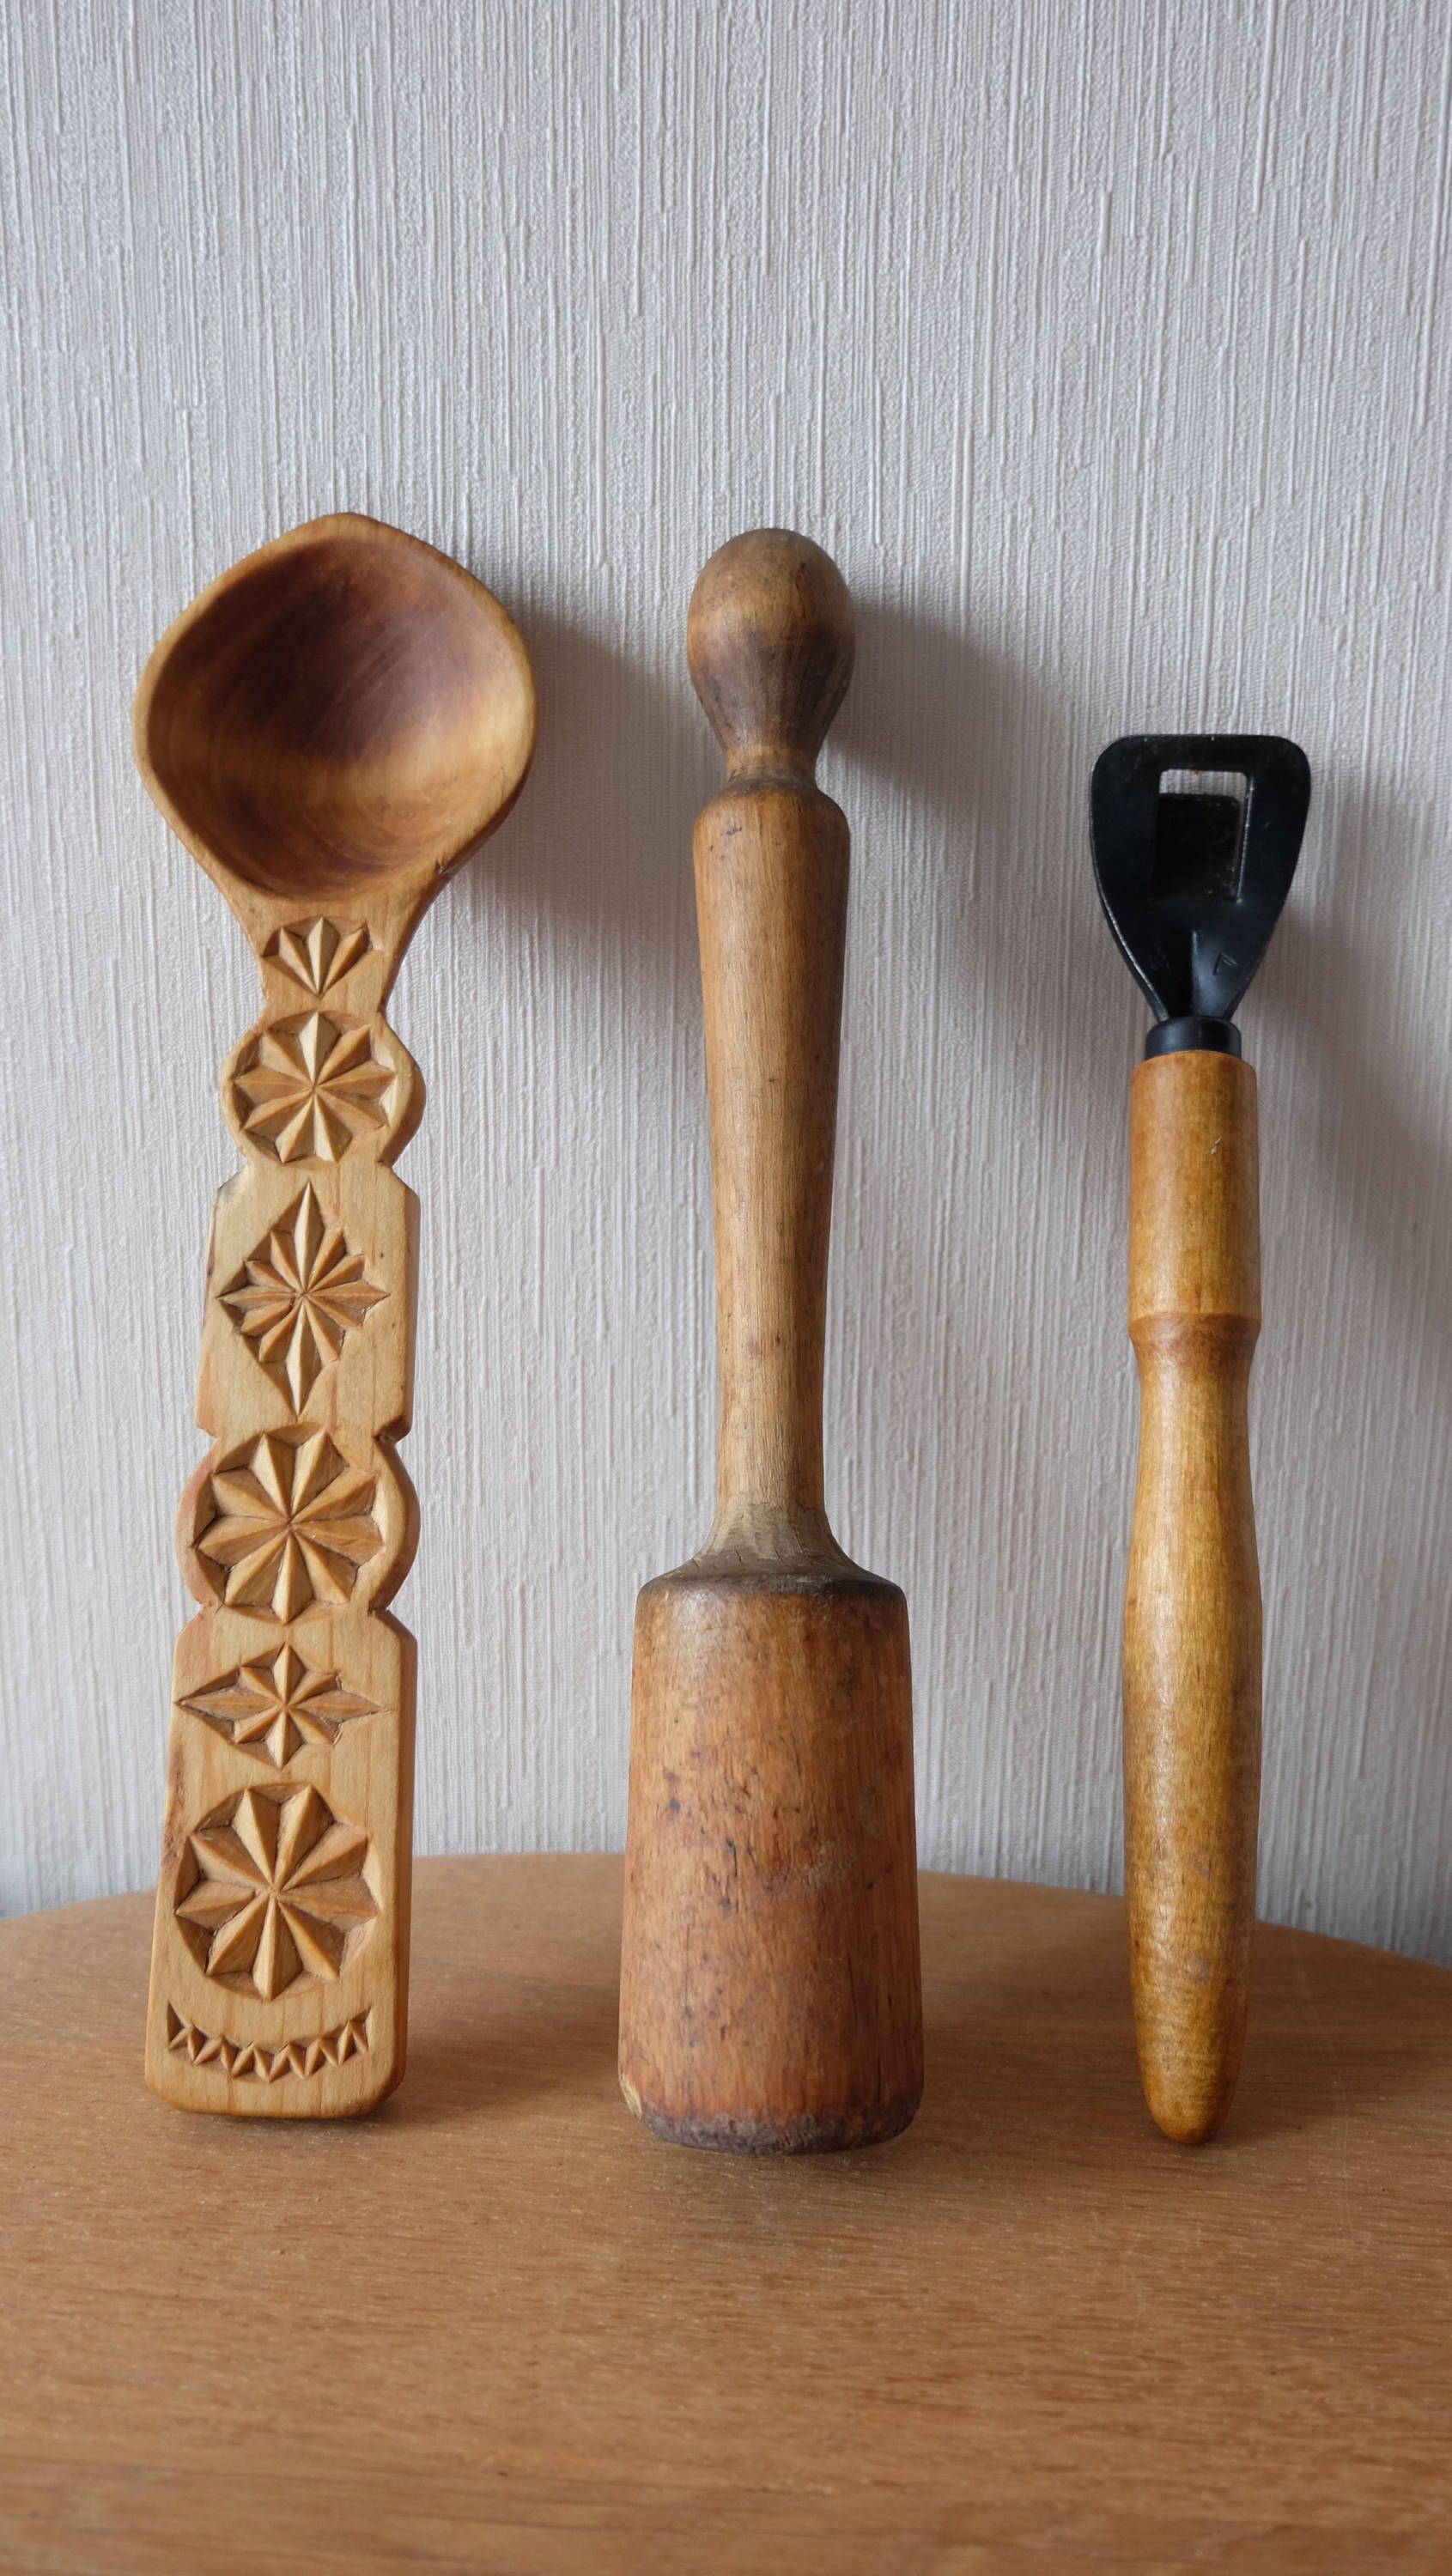 Antique Kitchen Utensils Collection, Soviet Vintage Kitchen Decor,  Kitchenware,Rustic Style 60s Set